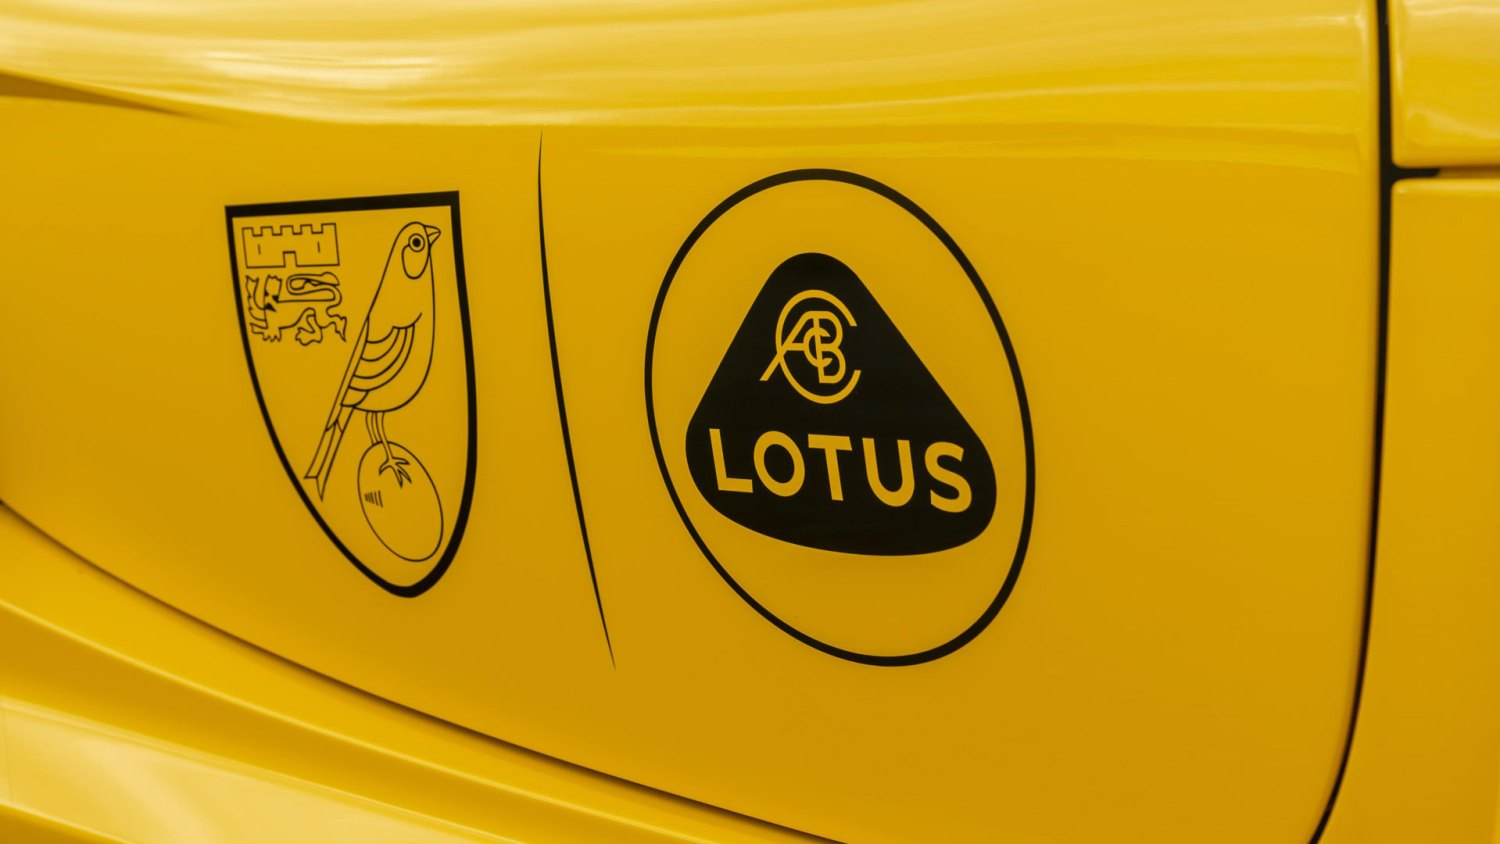 New Lotus branding Norwich City